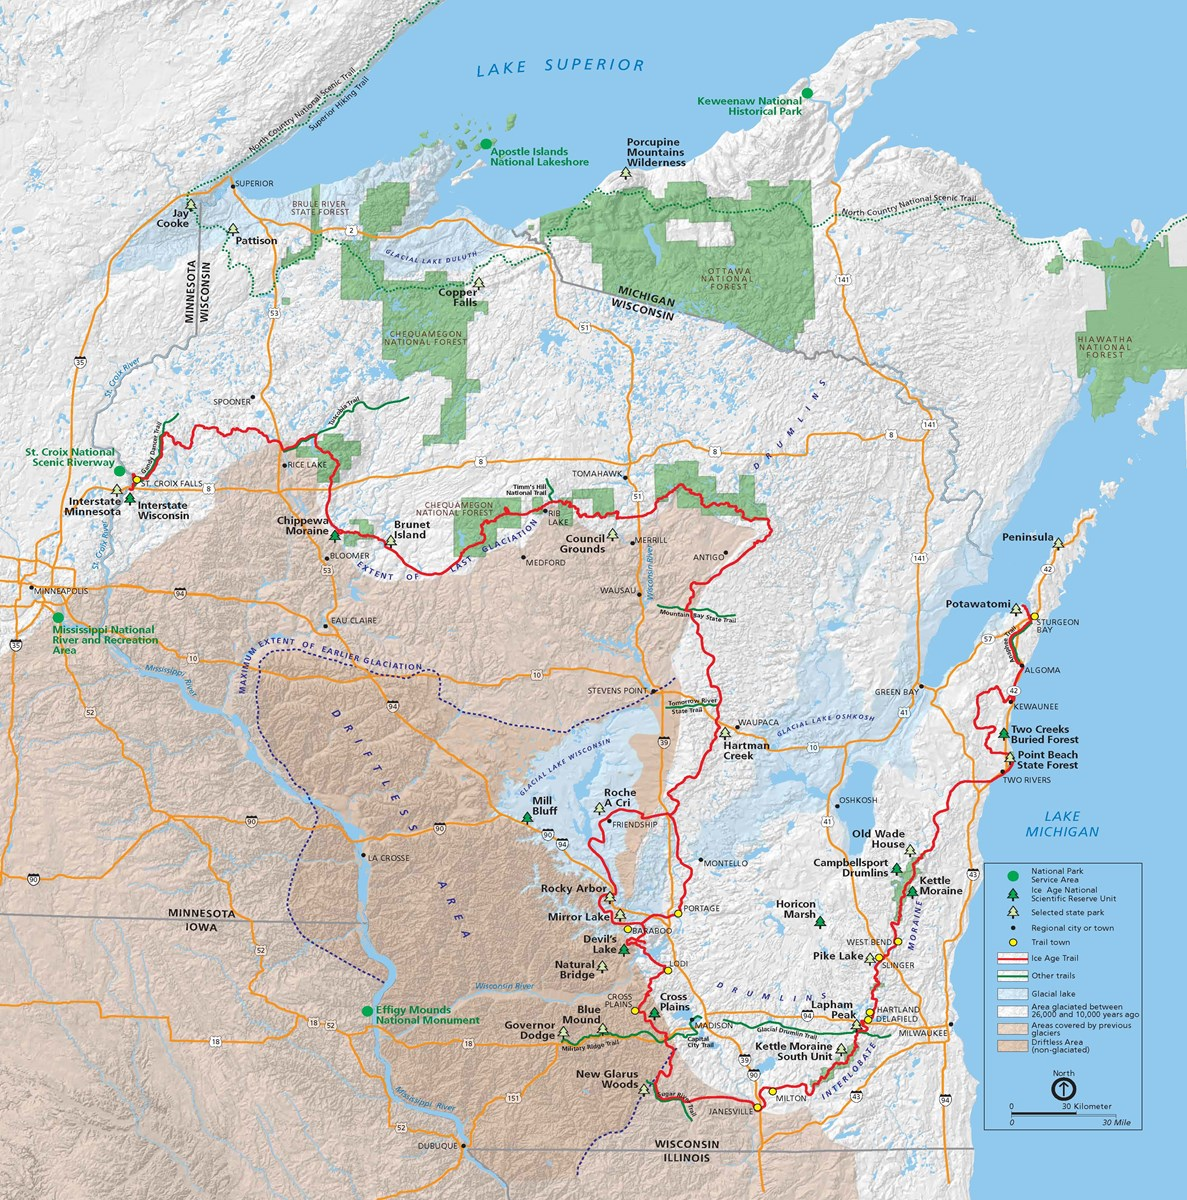 Map of Wisconsin showing the location of existing and future segments of the Trail, major cities and parks.